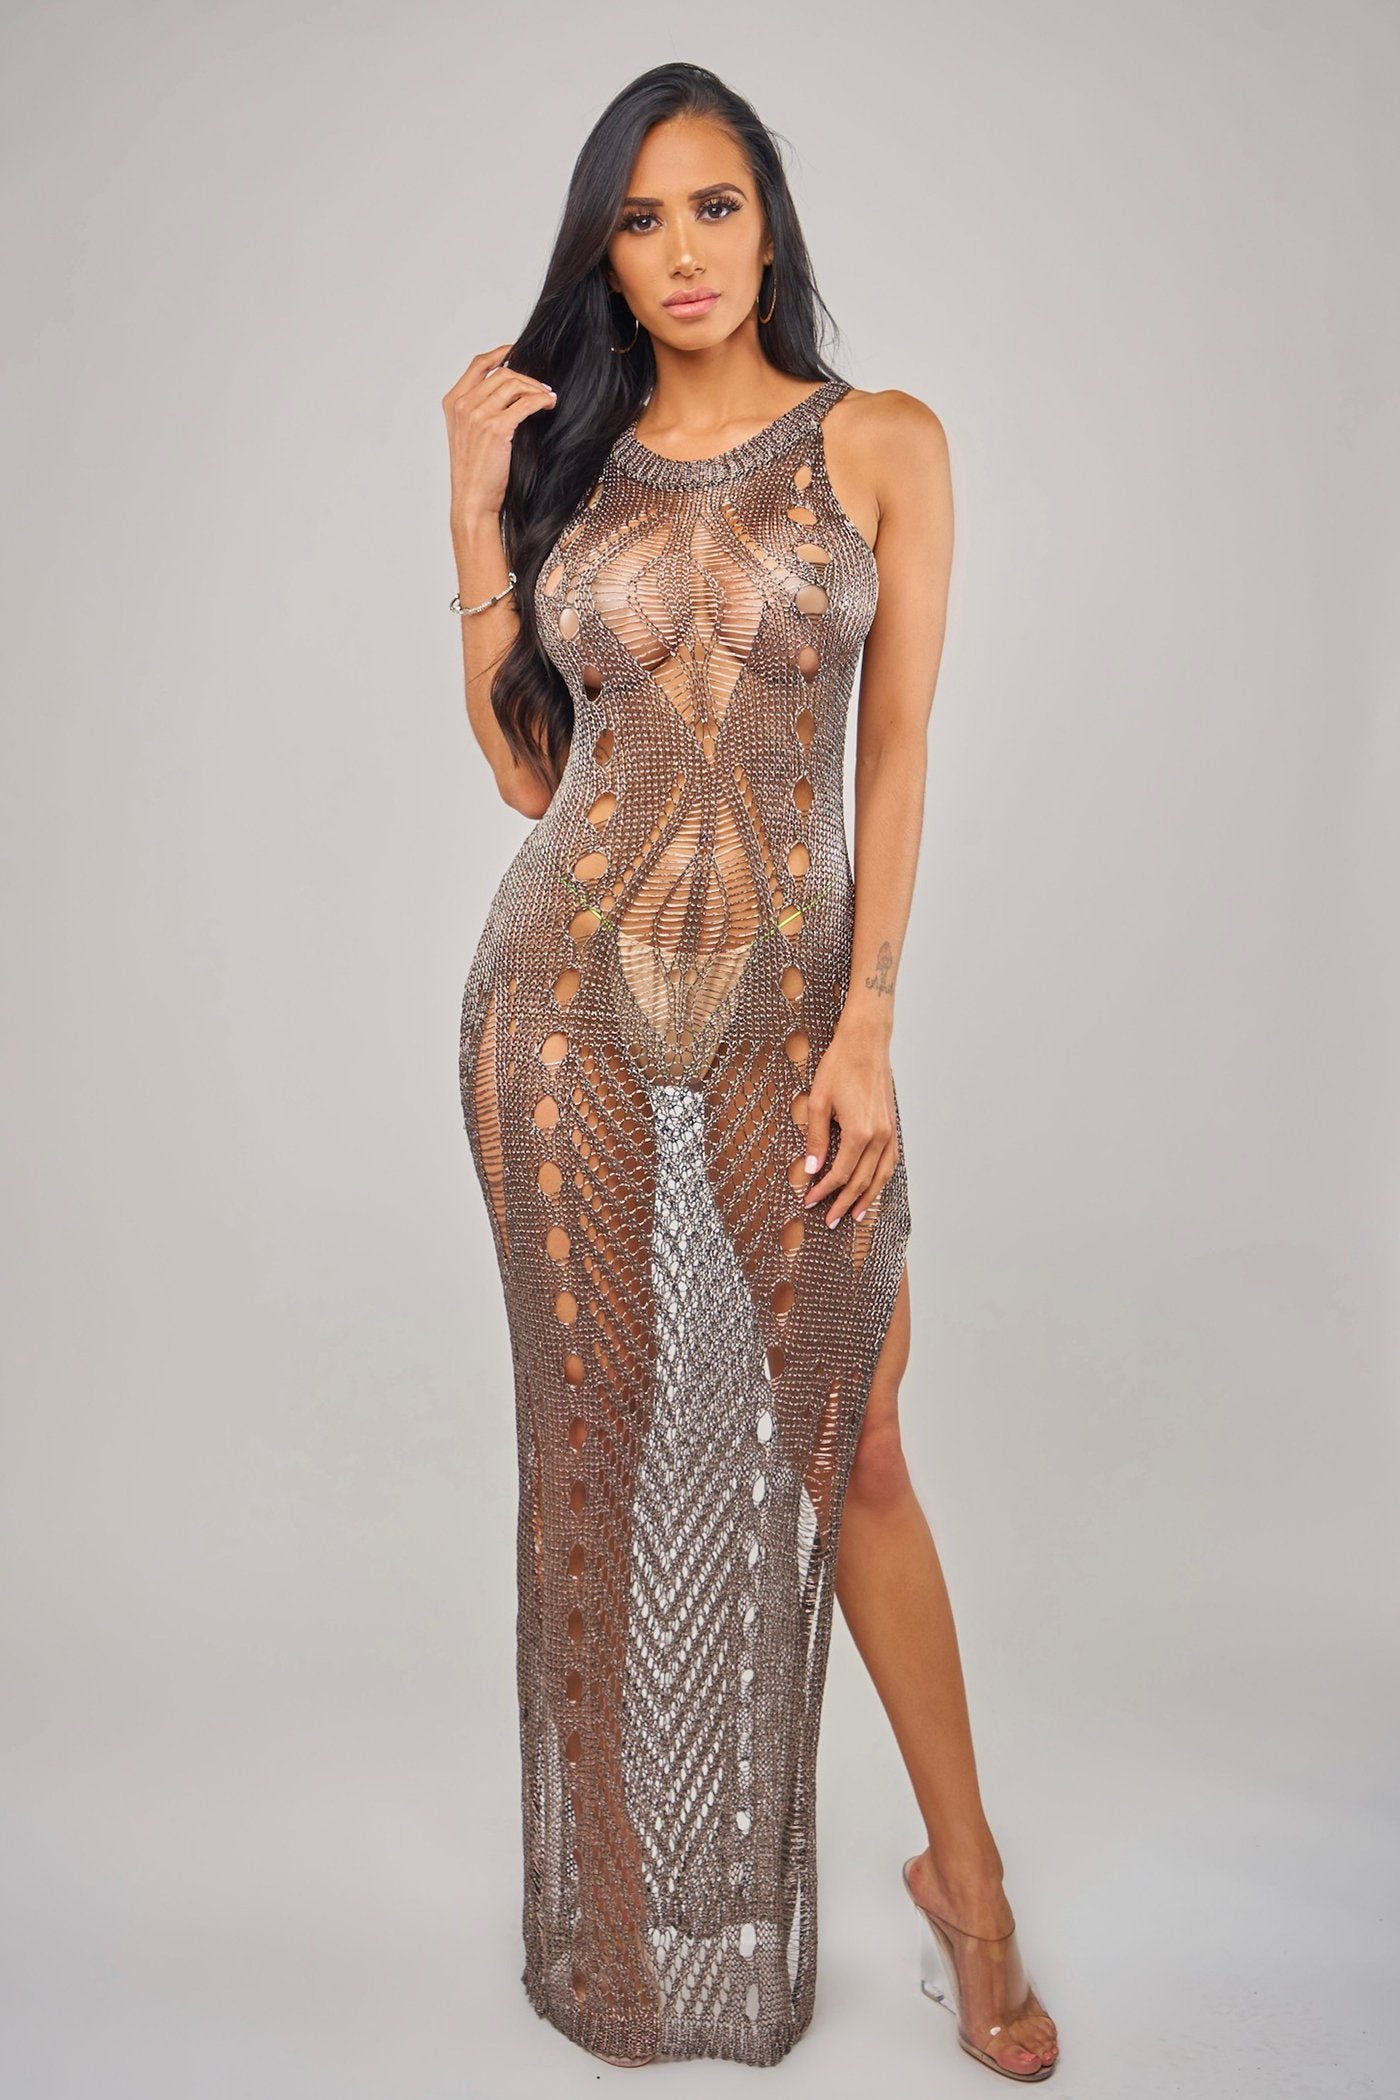 JOELL COVERUP - GREY Beachwear Lotus Couture Miami